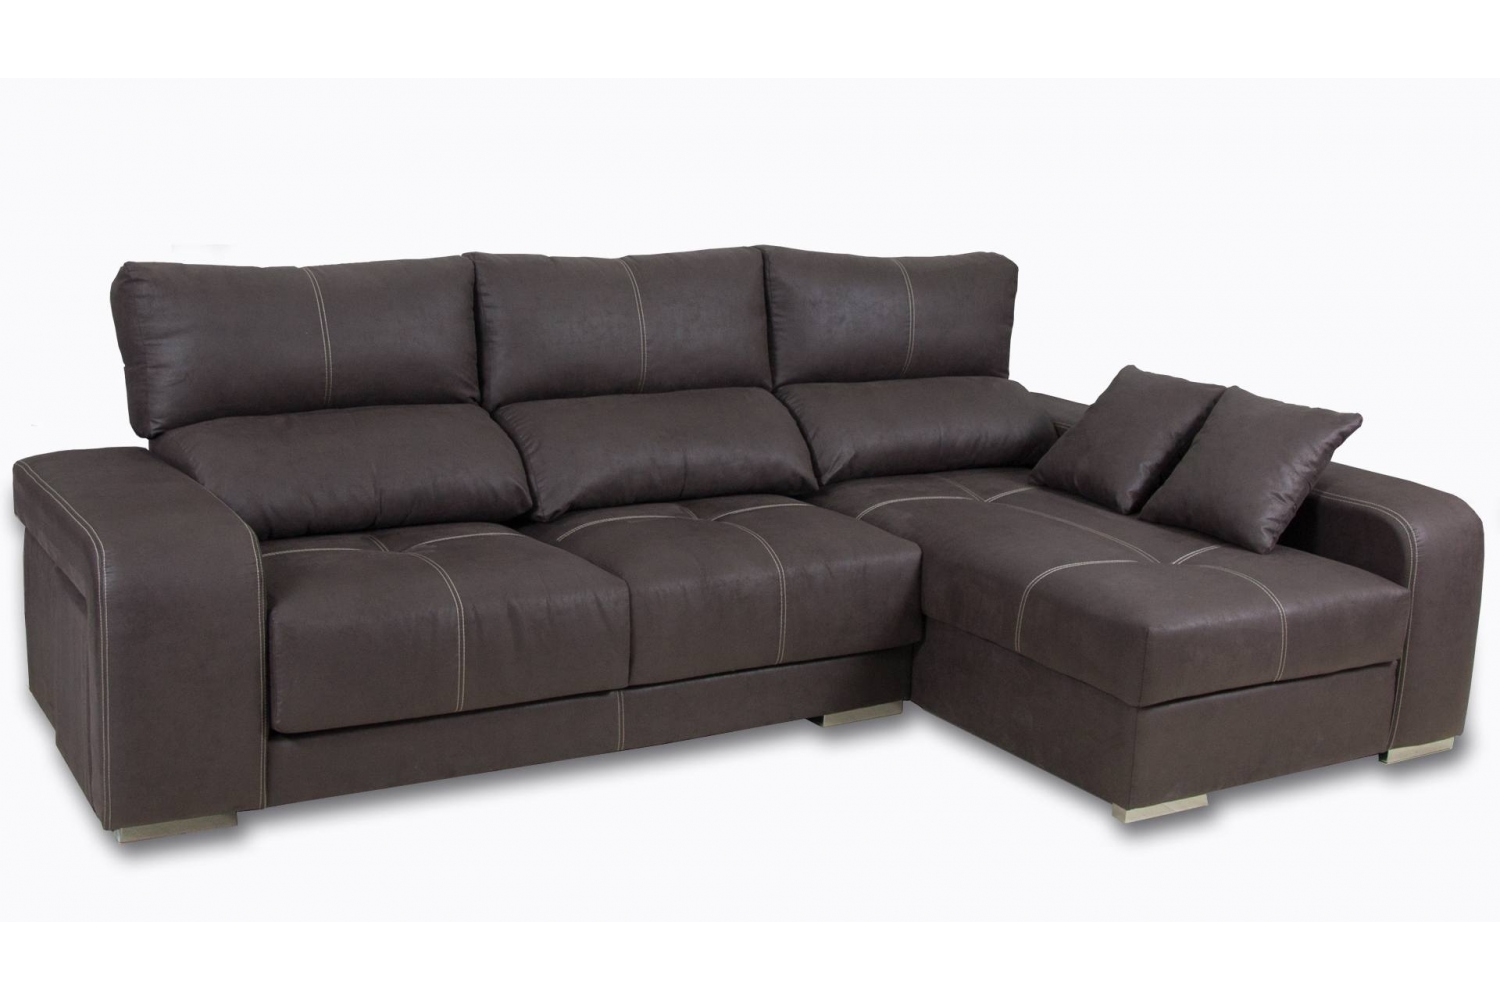 Sofá chaiselongue extraible y reclinable